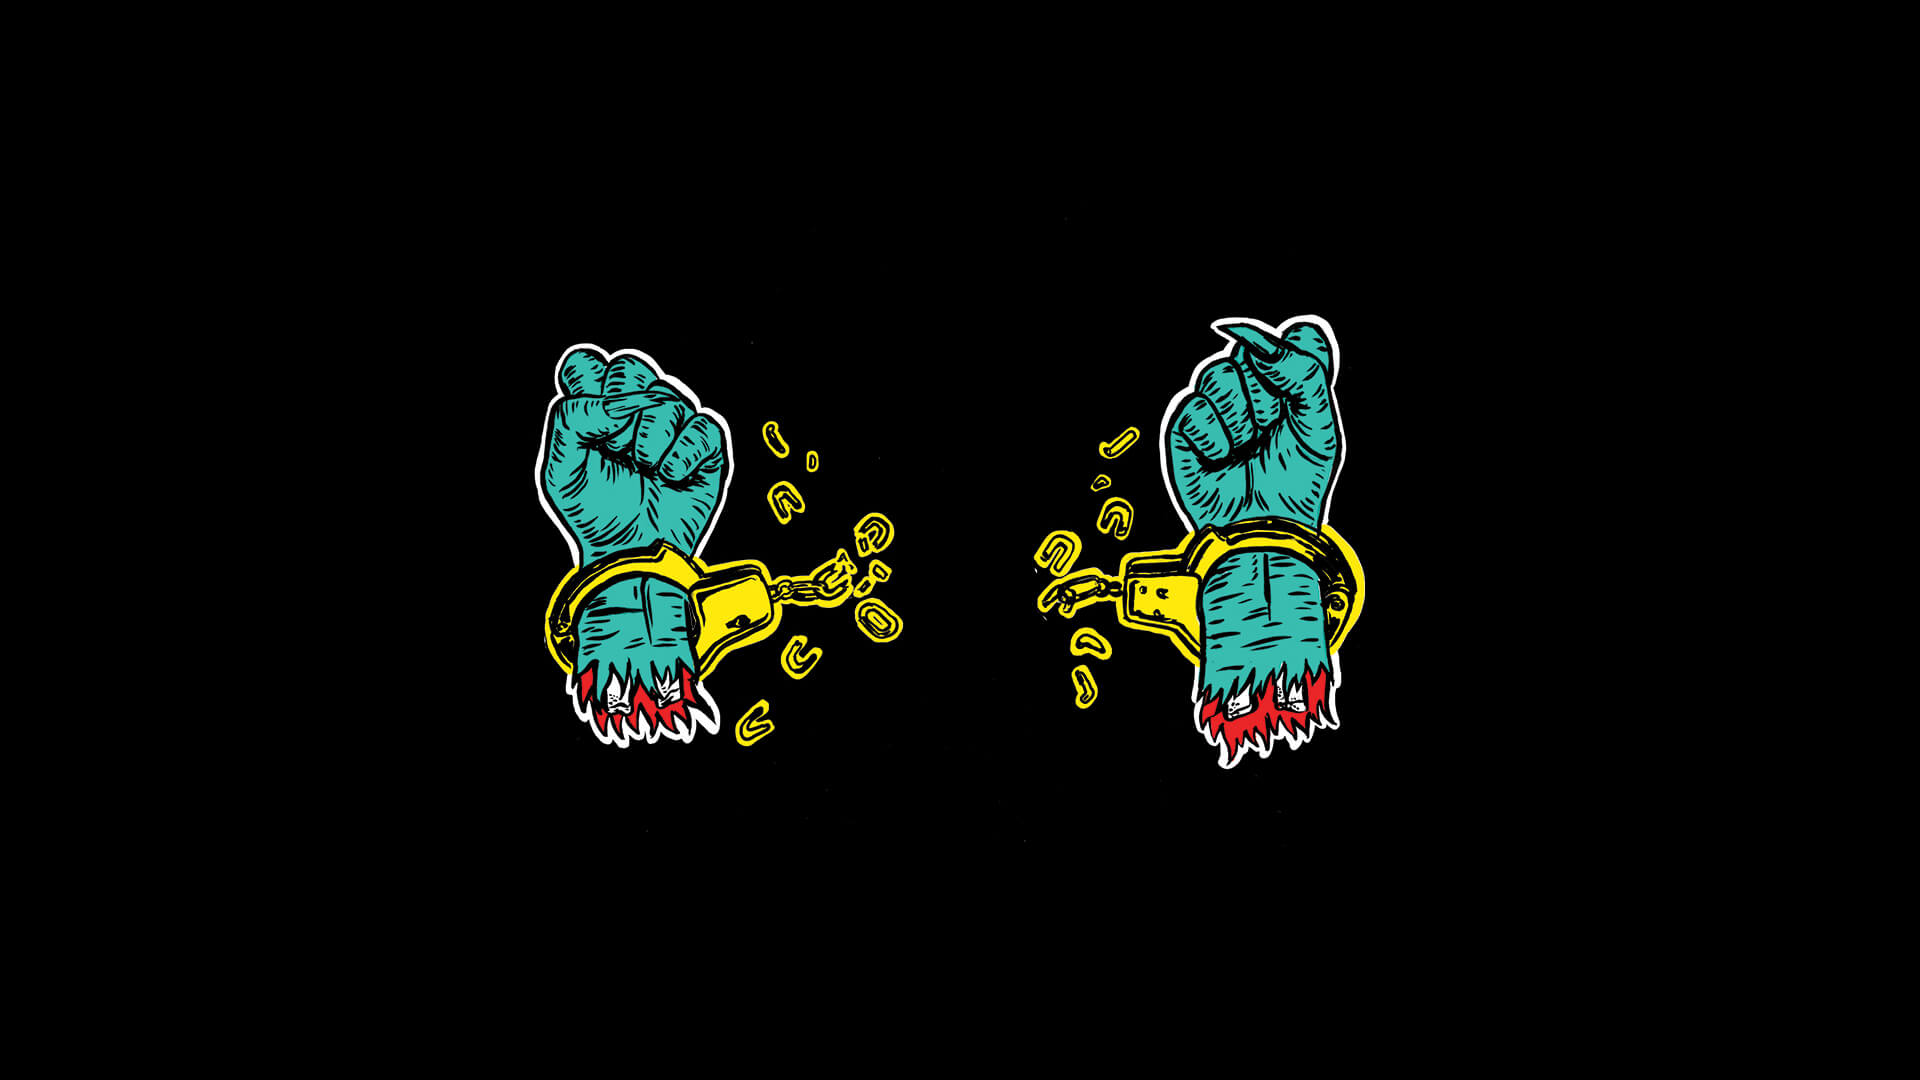 Free RTJ Desktop And Mobile Wallpaper Downloads - Run The Jewels